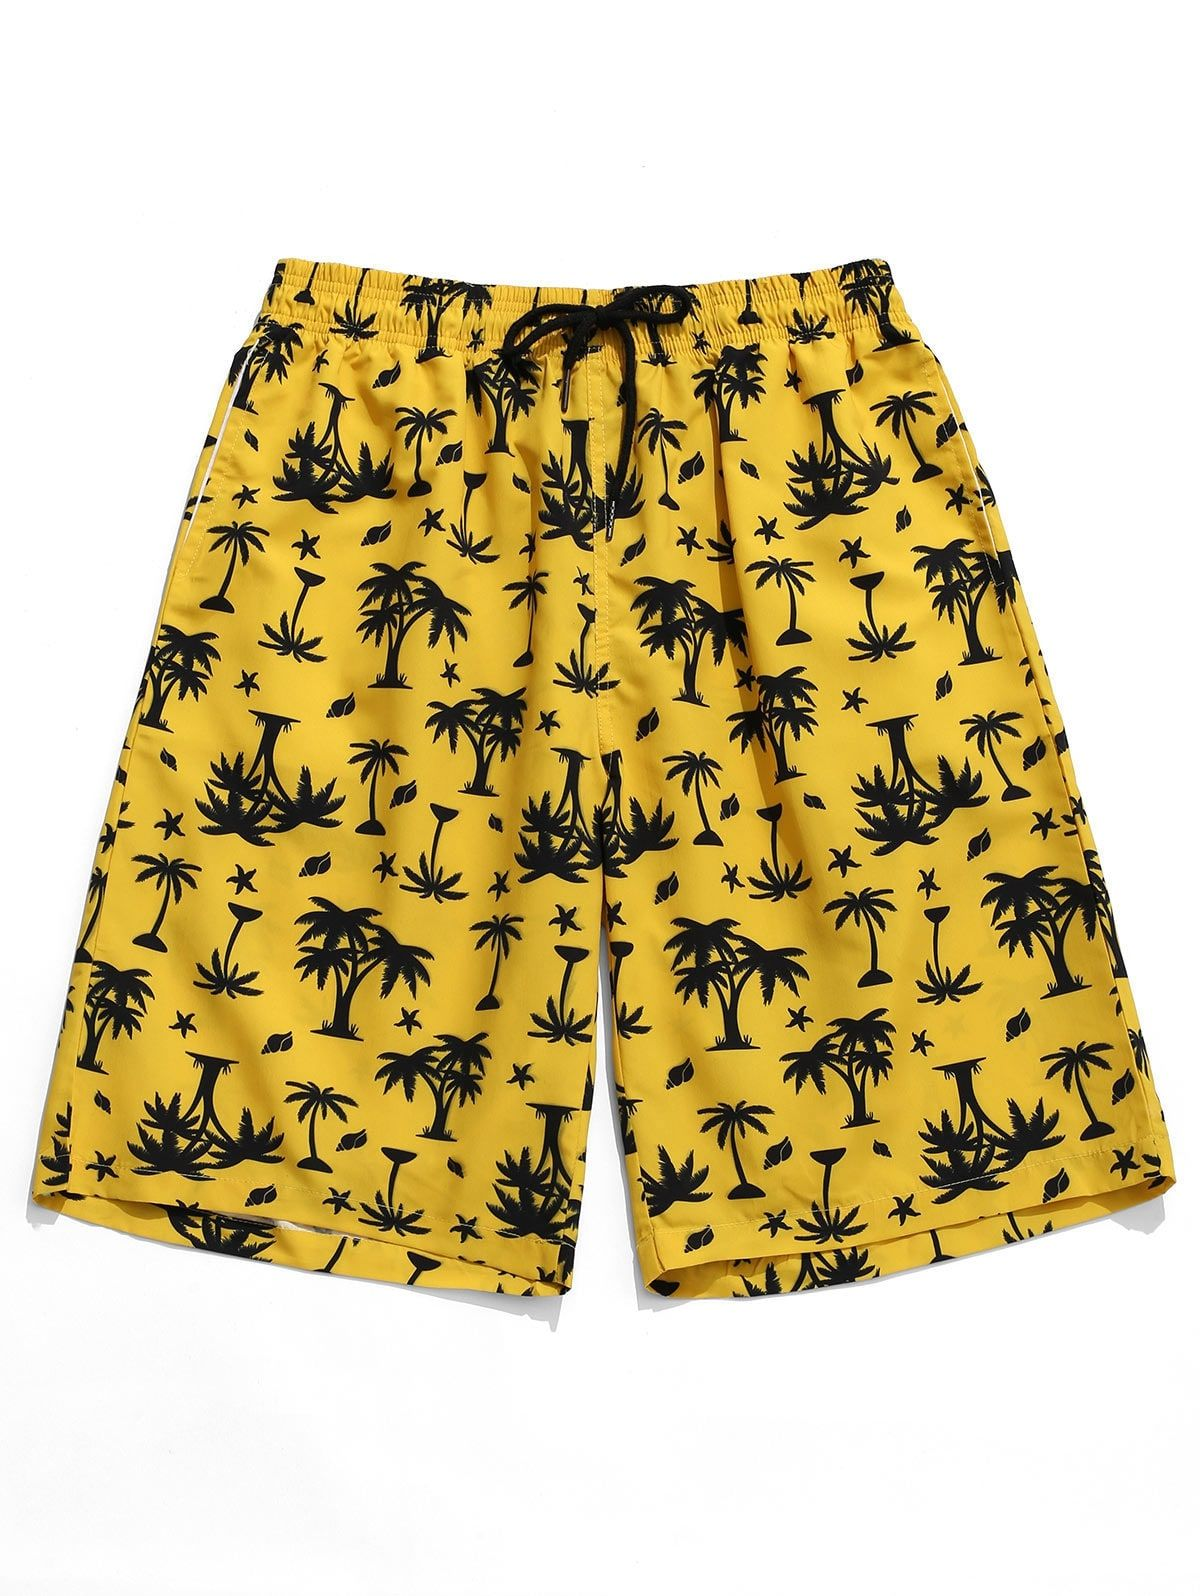 Hawaii Palm Print Board Shorts YELLOW , SPONSORED, Print